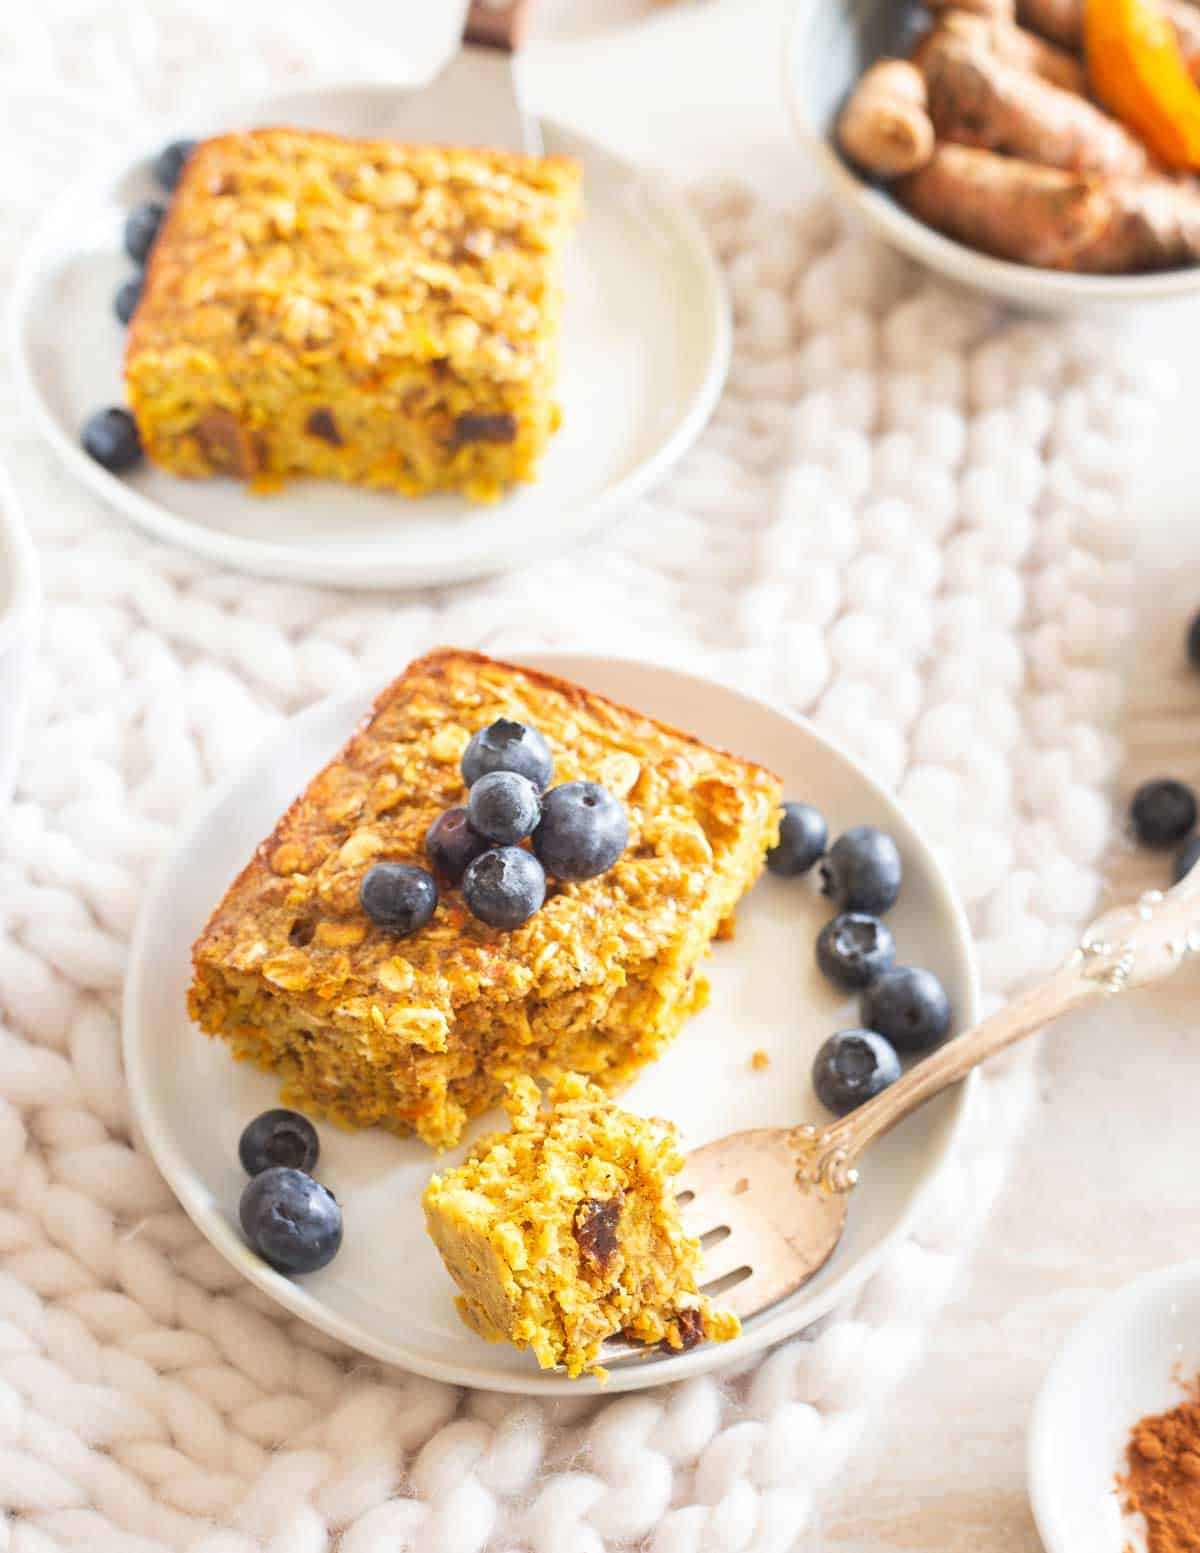 Baked turmeric oatmeal is studded with cinnamon and raisins for a healthy and hearty anti-inflammatory breakfast and easy to make ahead.